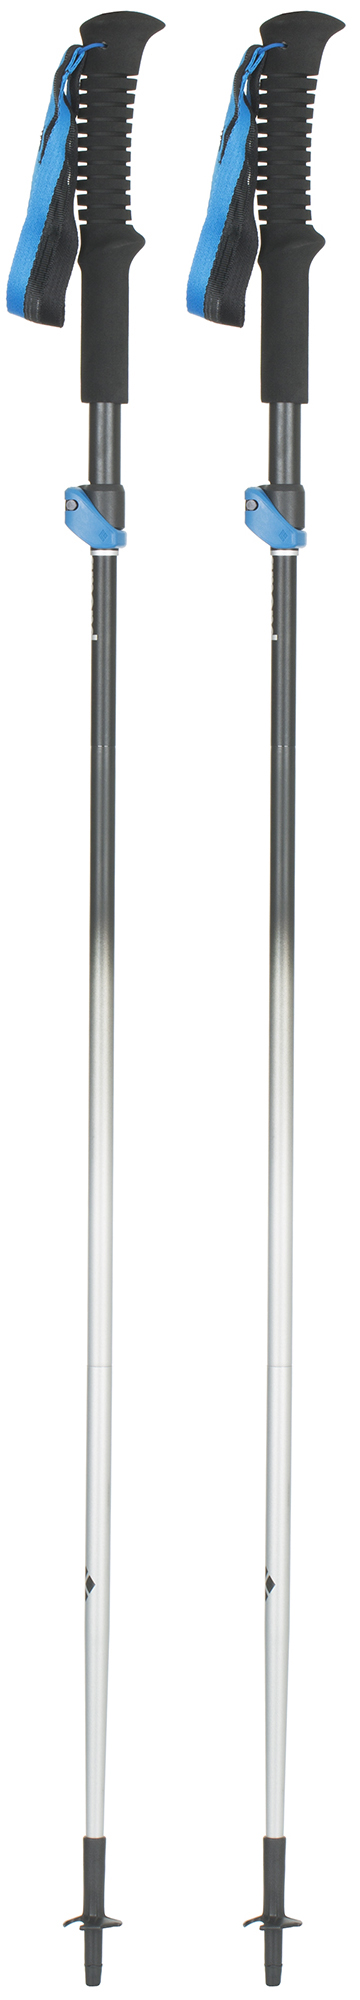 Black Diamond Трекинговые палки Black Diamond Dist Flz Z-Poles